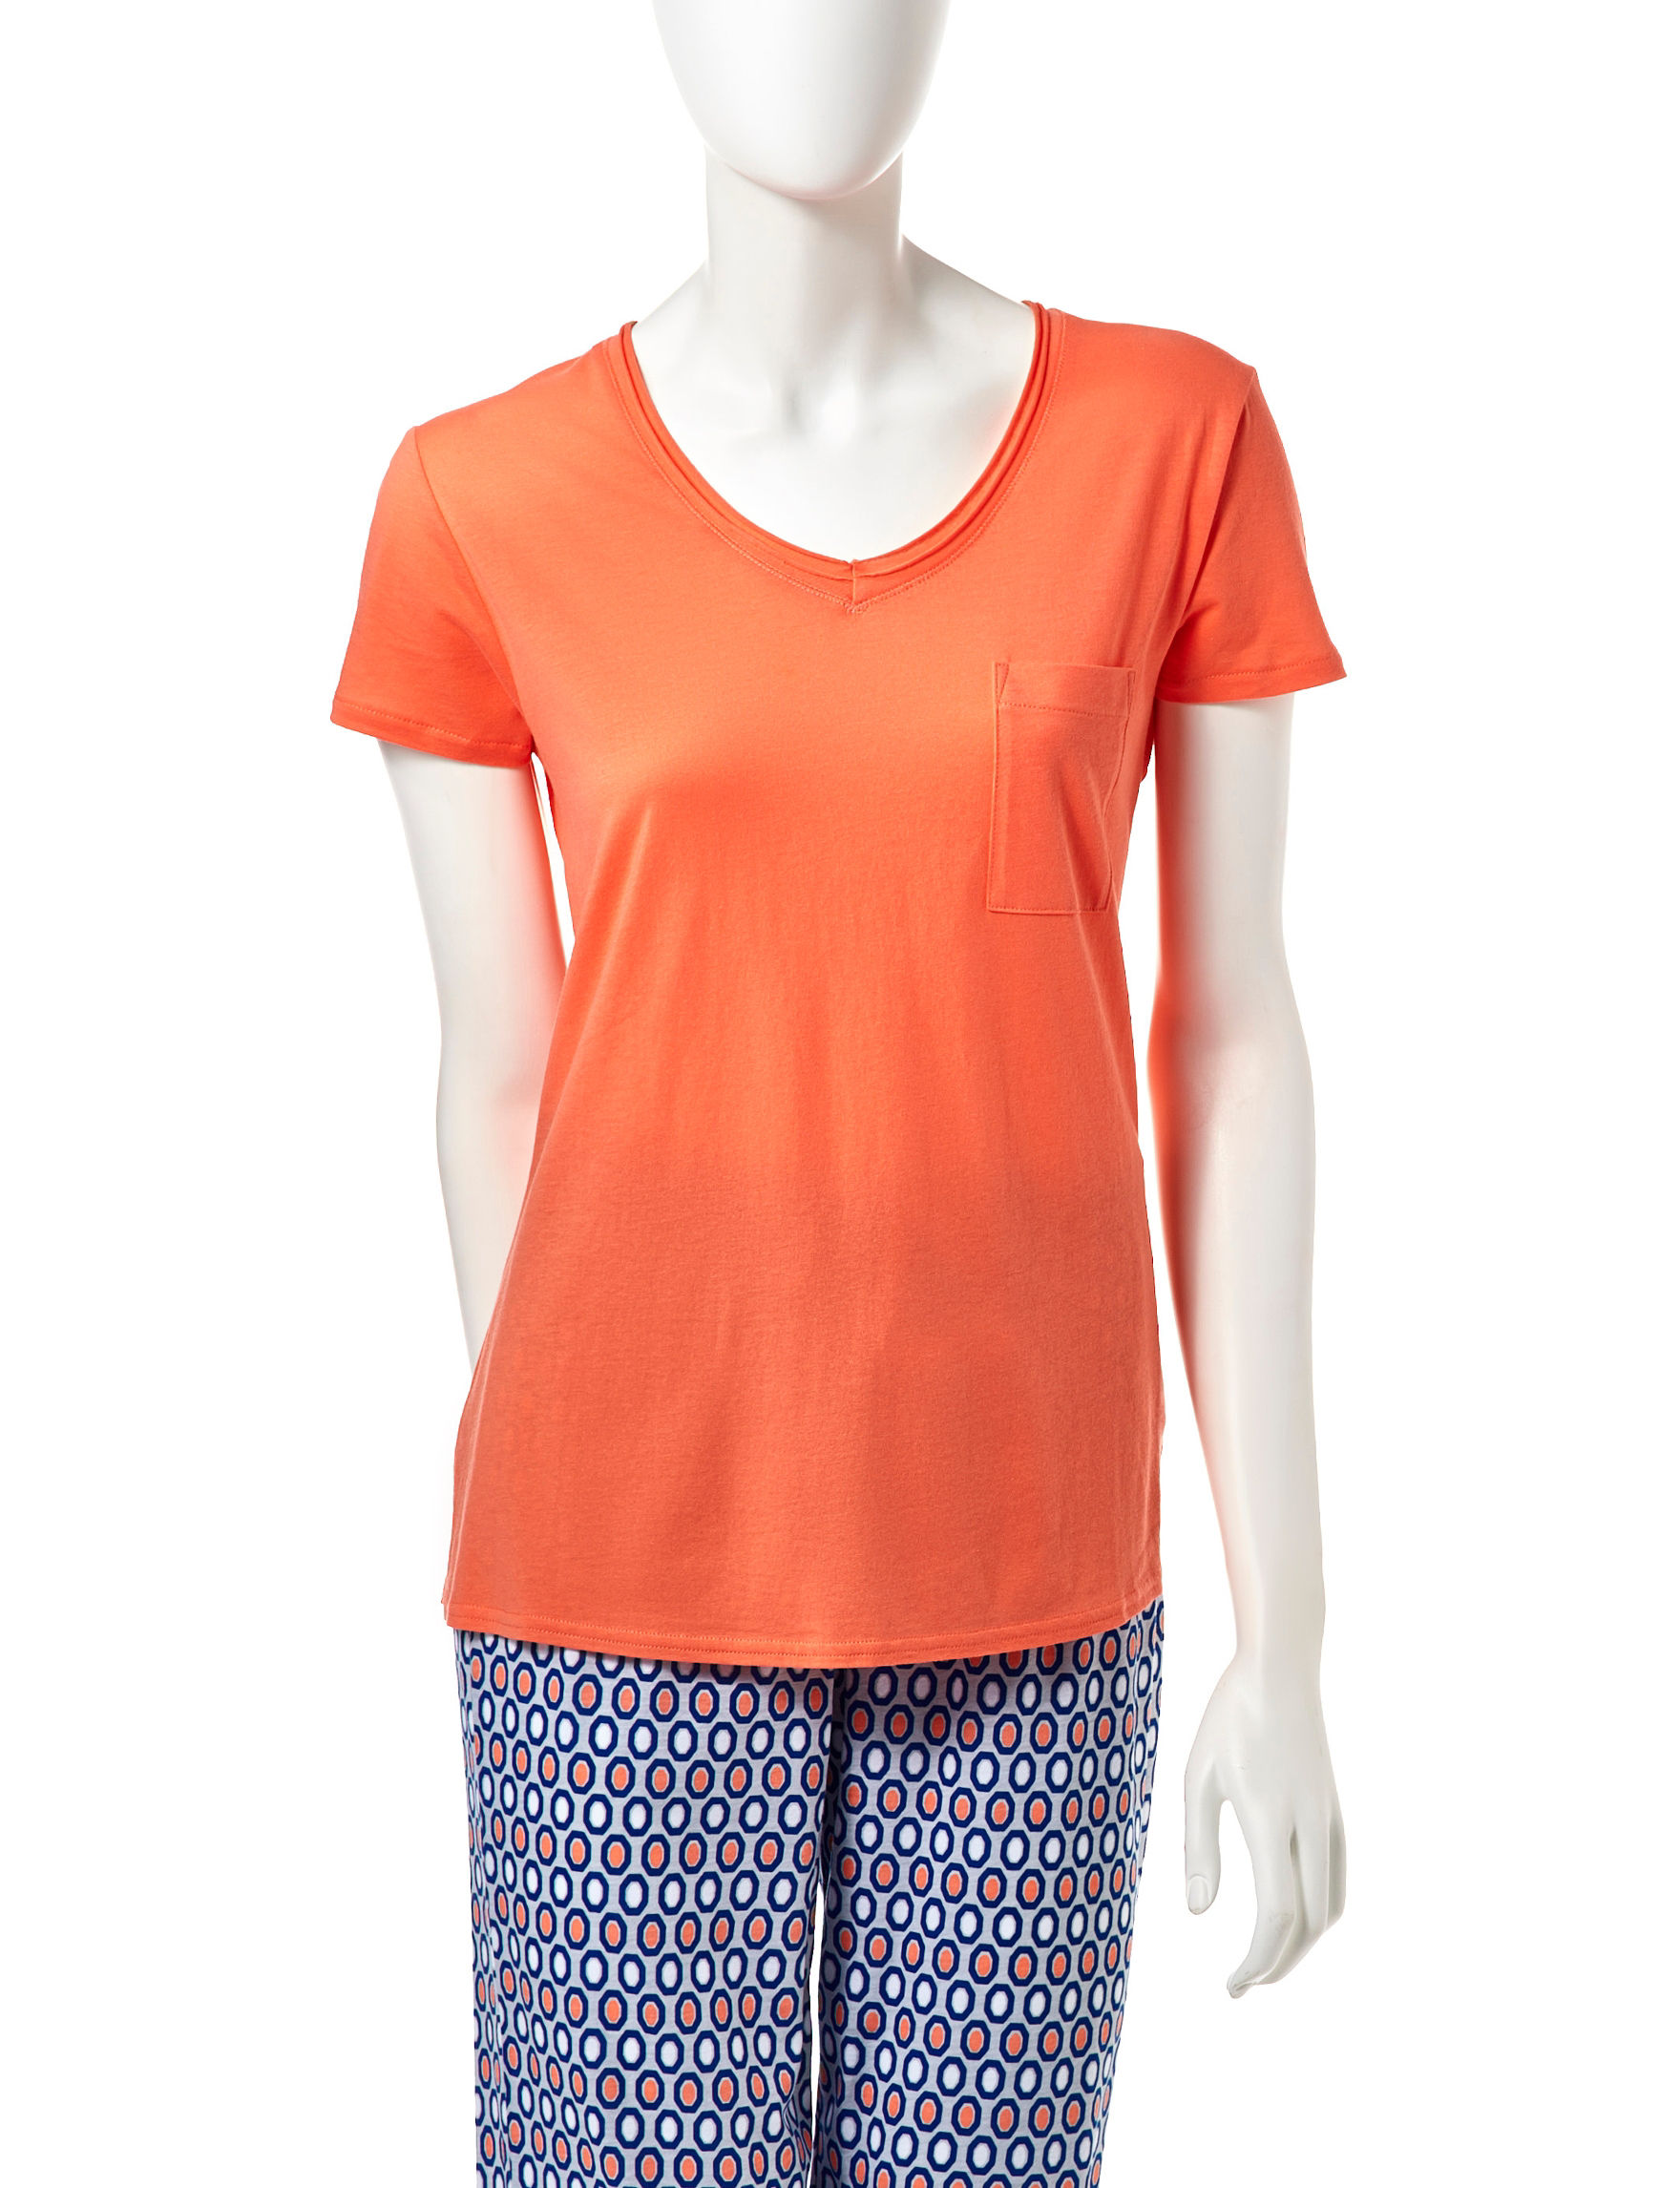 Goodnight Kiss Orange Pajama Tops